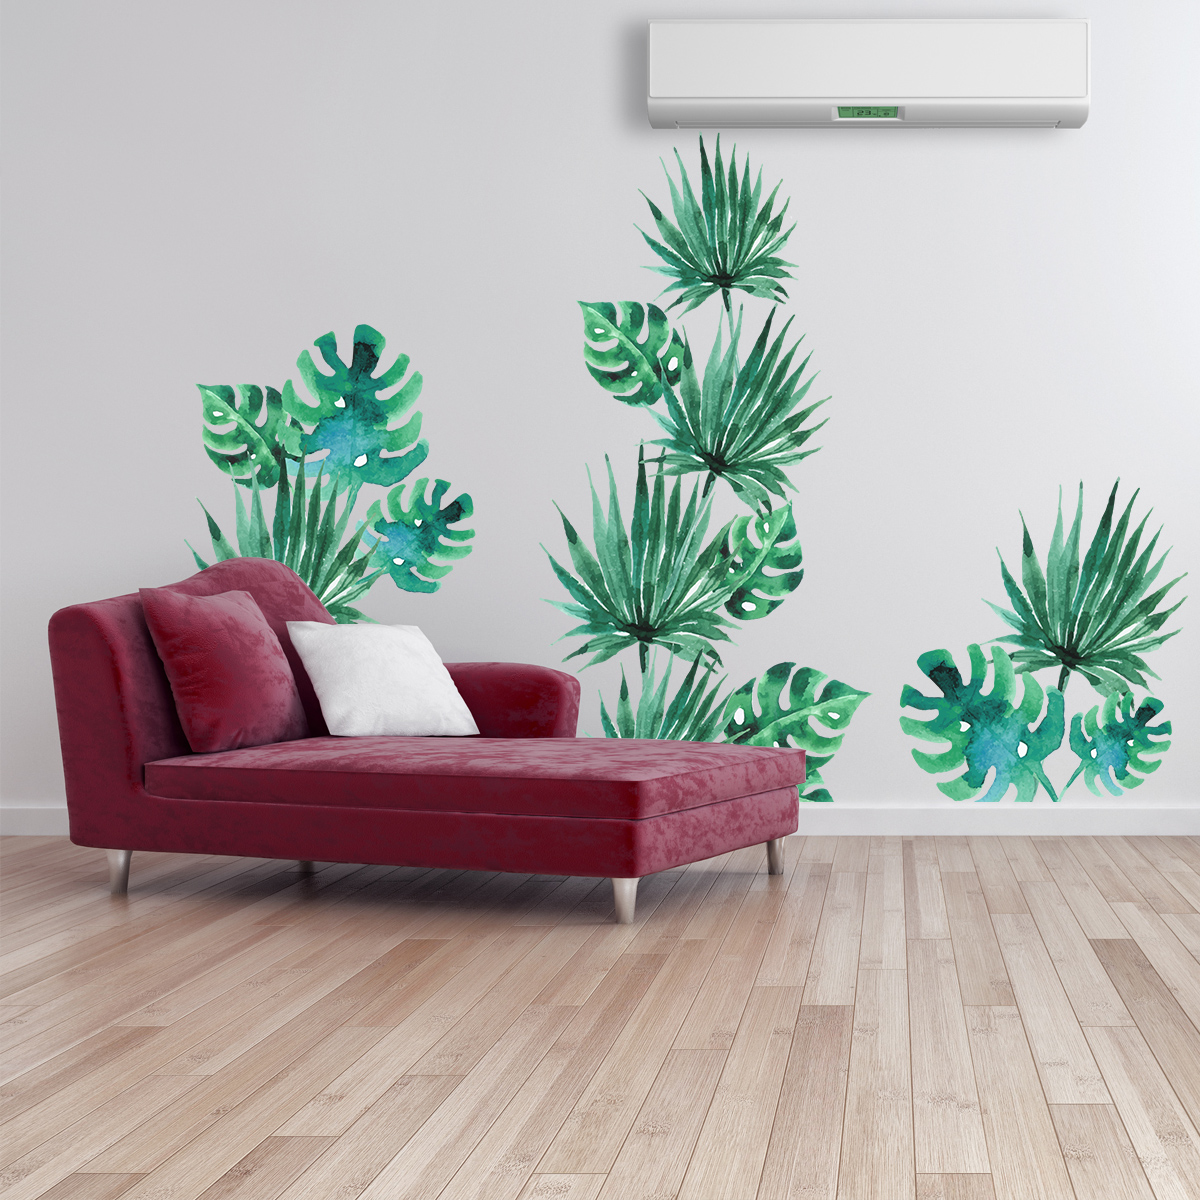 Sticker Feuilles Tropicales Stickers Stickers Nature